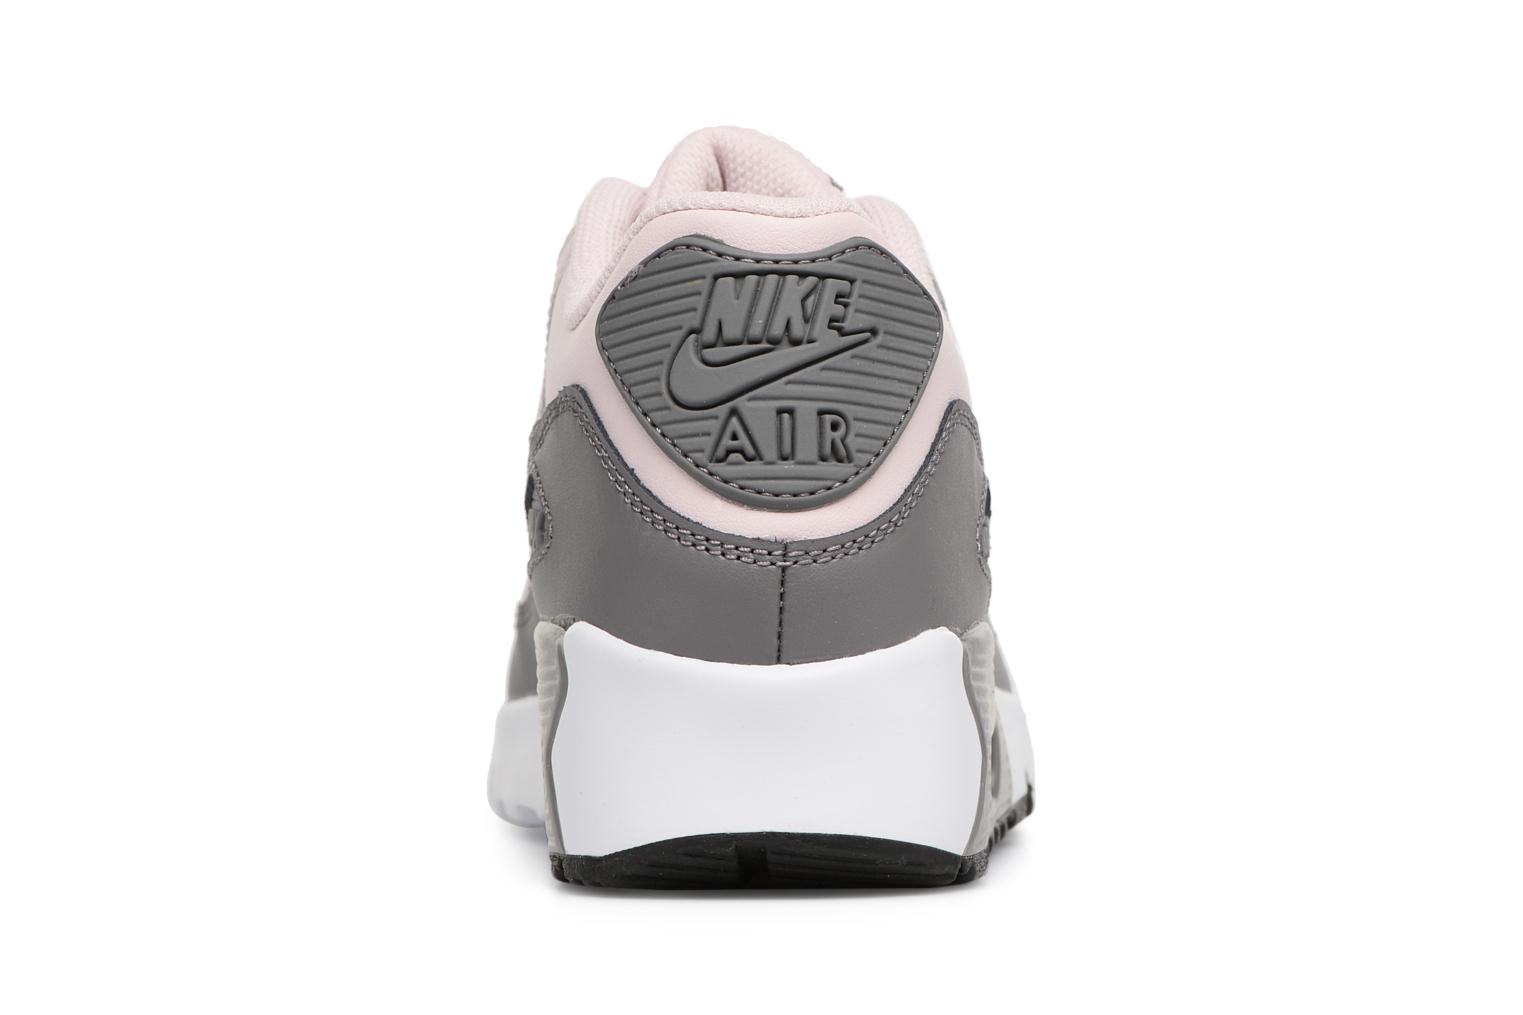 Nike Air Max 90 Ltr (Gs) Barely Rose/Gunsmoke-White-Black